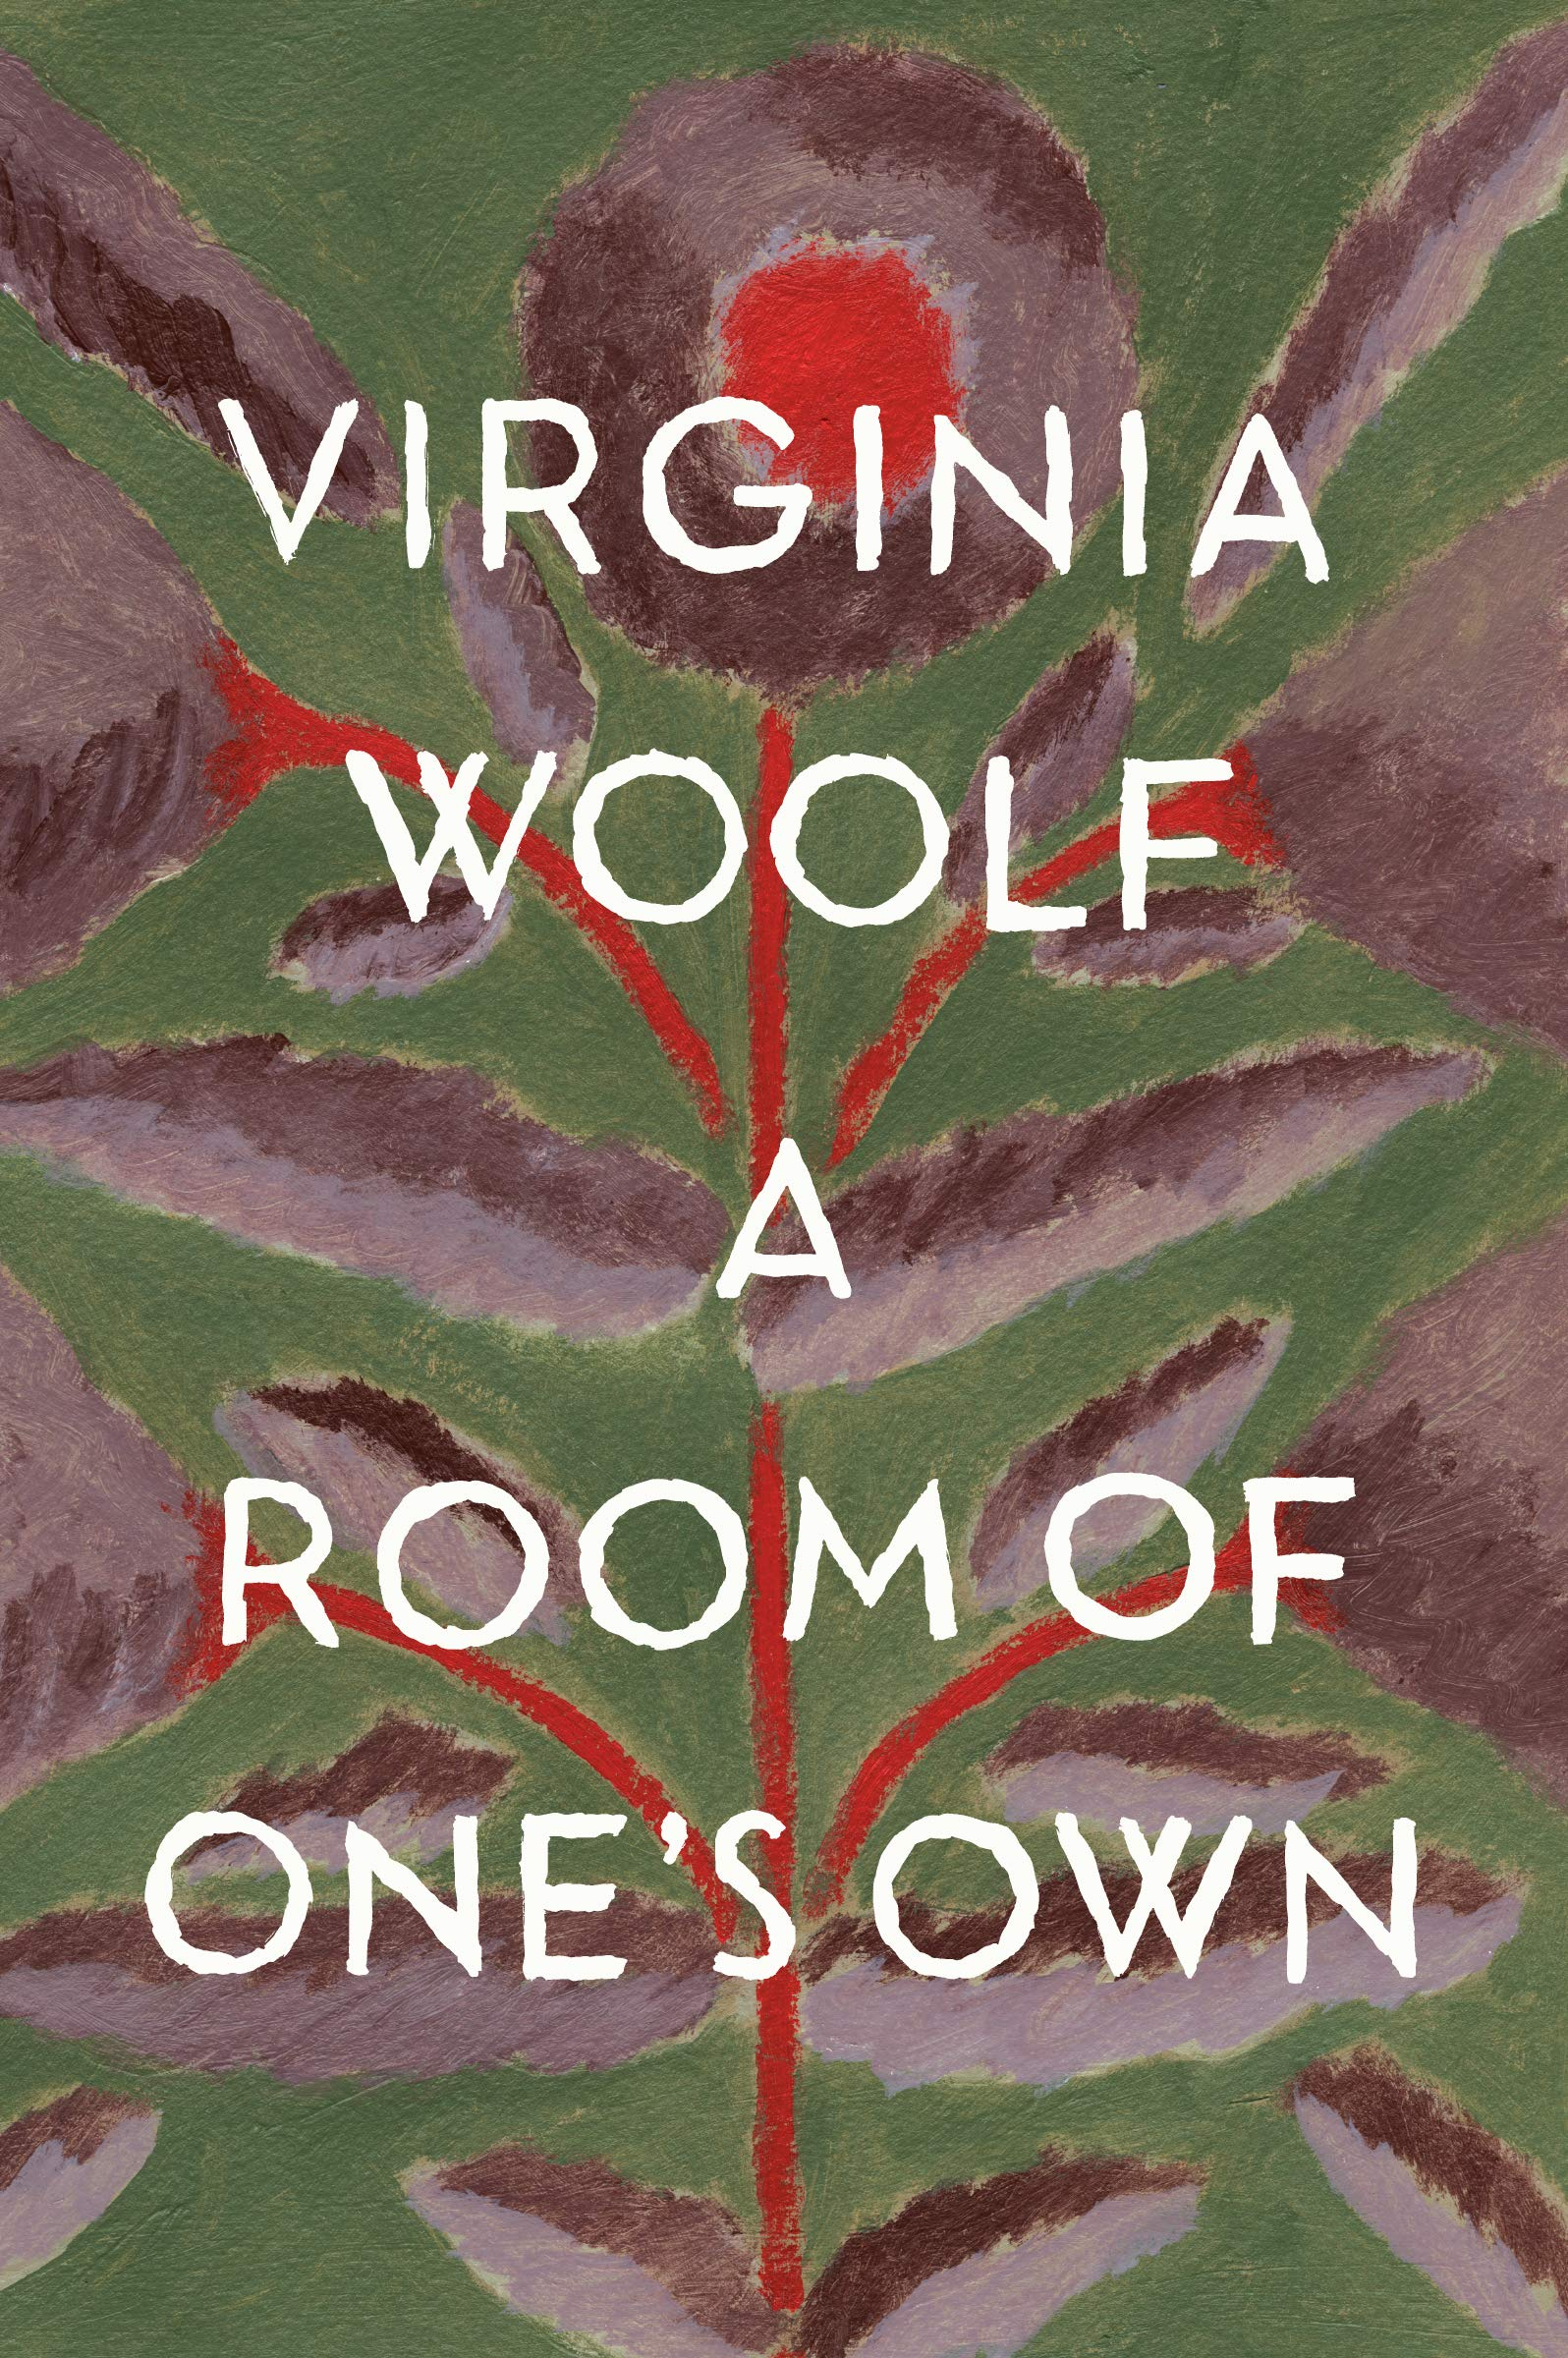 Virginia Woolf A Room of One's Own